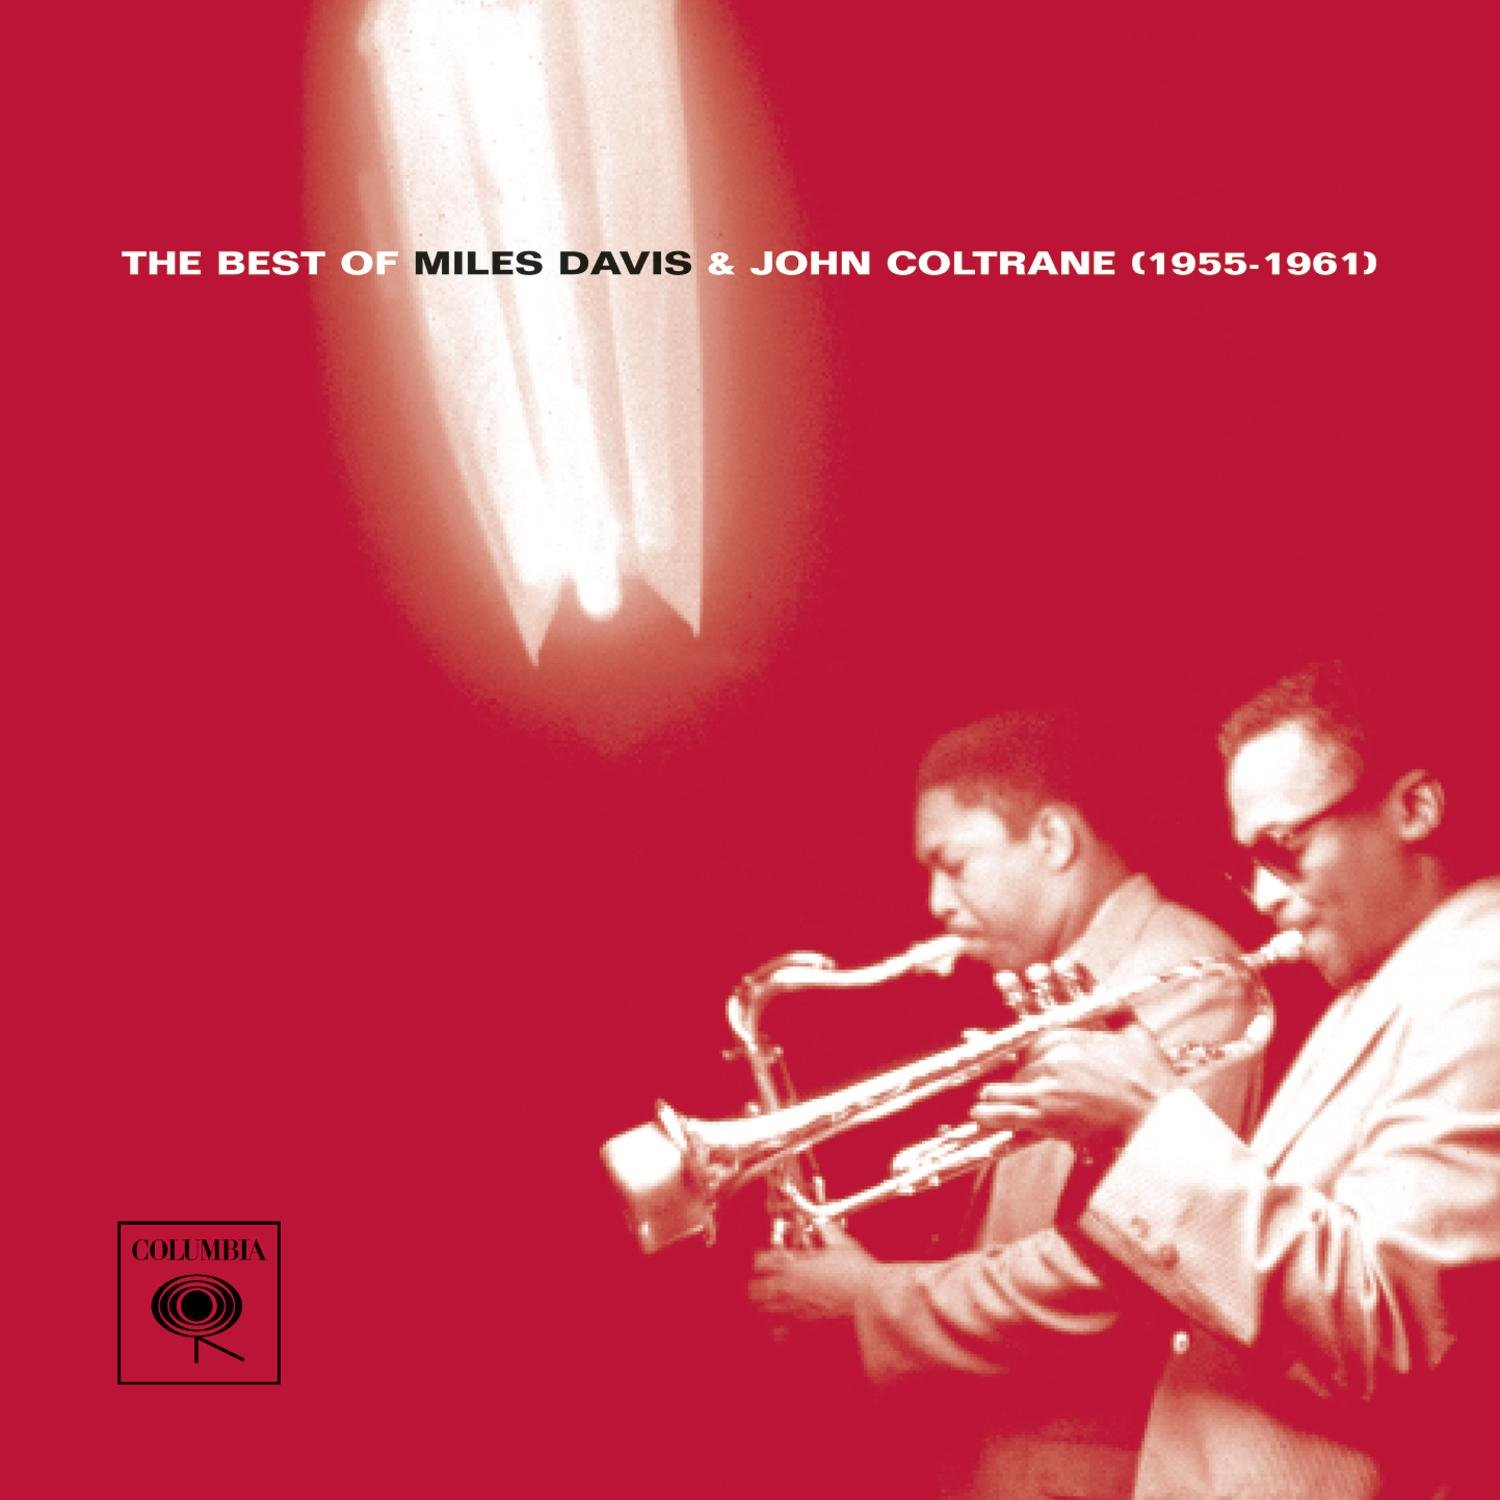 Miles davis john coltrane the best of miles davis john coltrane miles davis john coltrane the best of miles davis john coltrane 1955 1961 amazon music stopboris Image collections